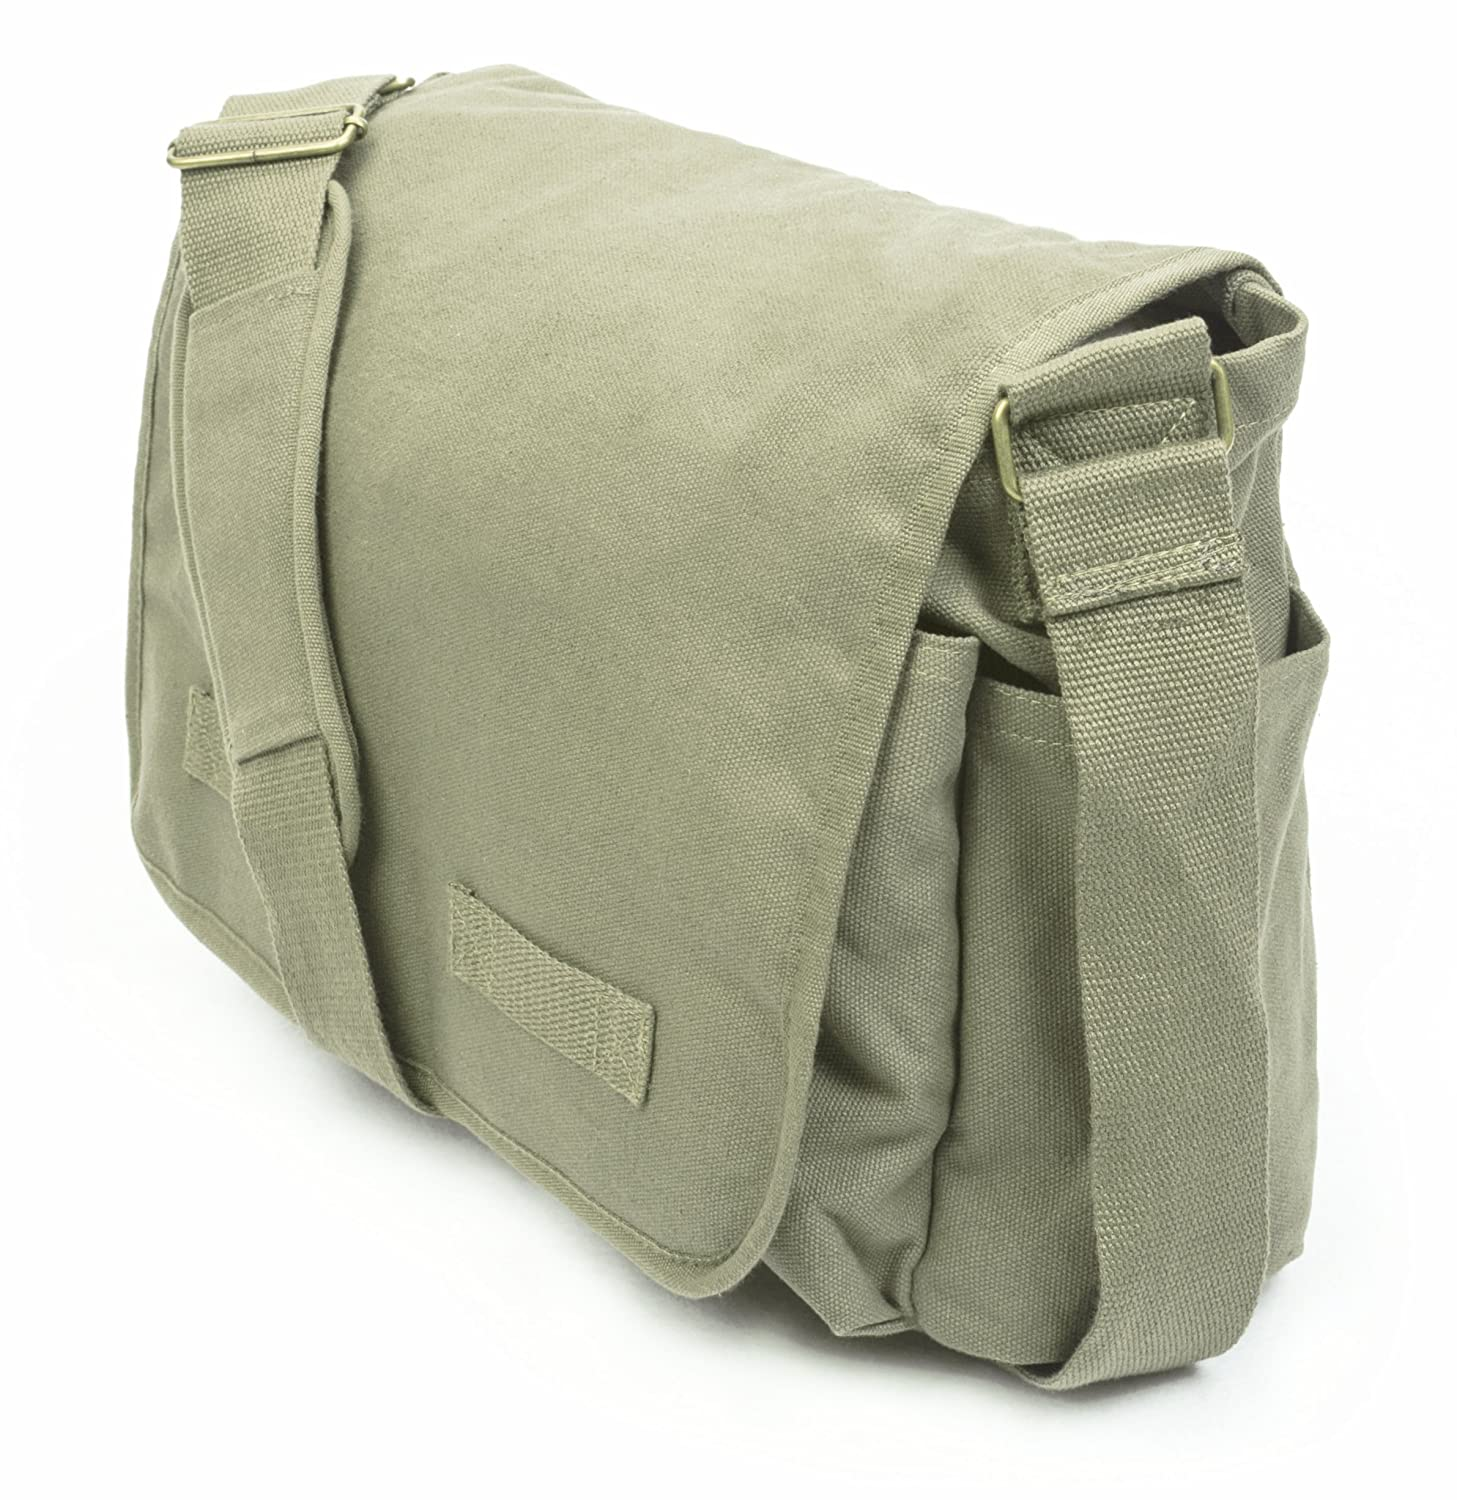 b9aba43f69a3 Sweetbriar Classic Messenger Bag - Vintage Canvas Shoulder Bag for All-Purpose  Use CMBB